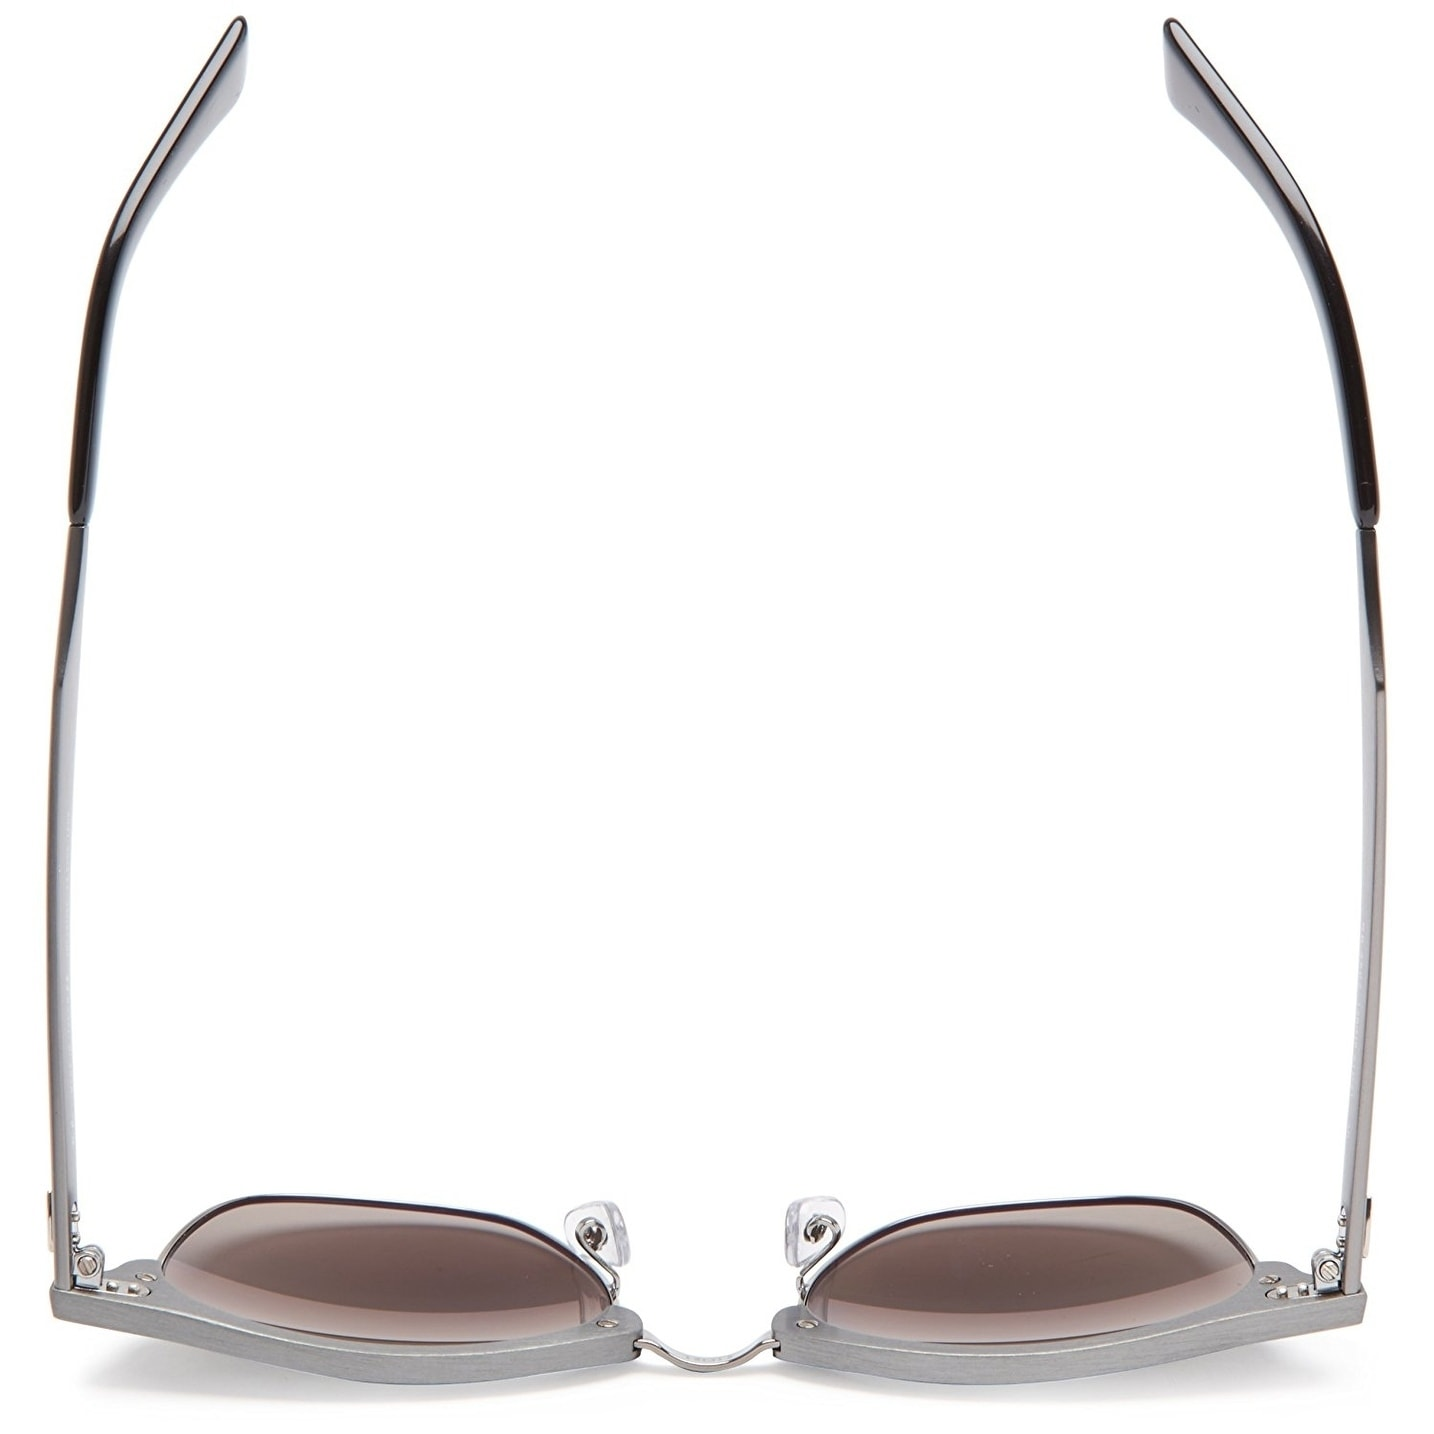 59f46a6bf18 Shop Ray-Ban RB3507 Clubmaster Aluminum Gunmetal Frame Polarized Grey  Gradient 51mm Lens Sunglasses - Free Shipping Today - Overstock - 20707676